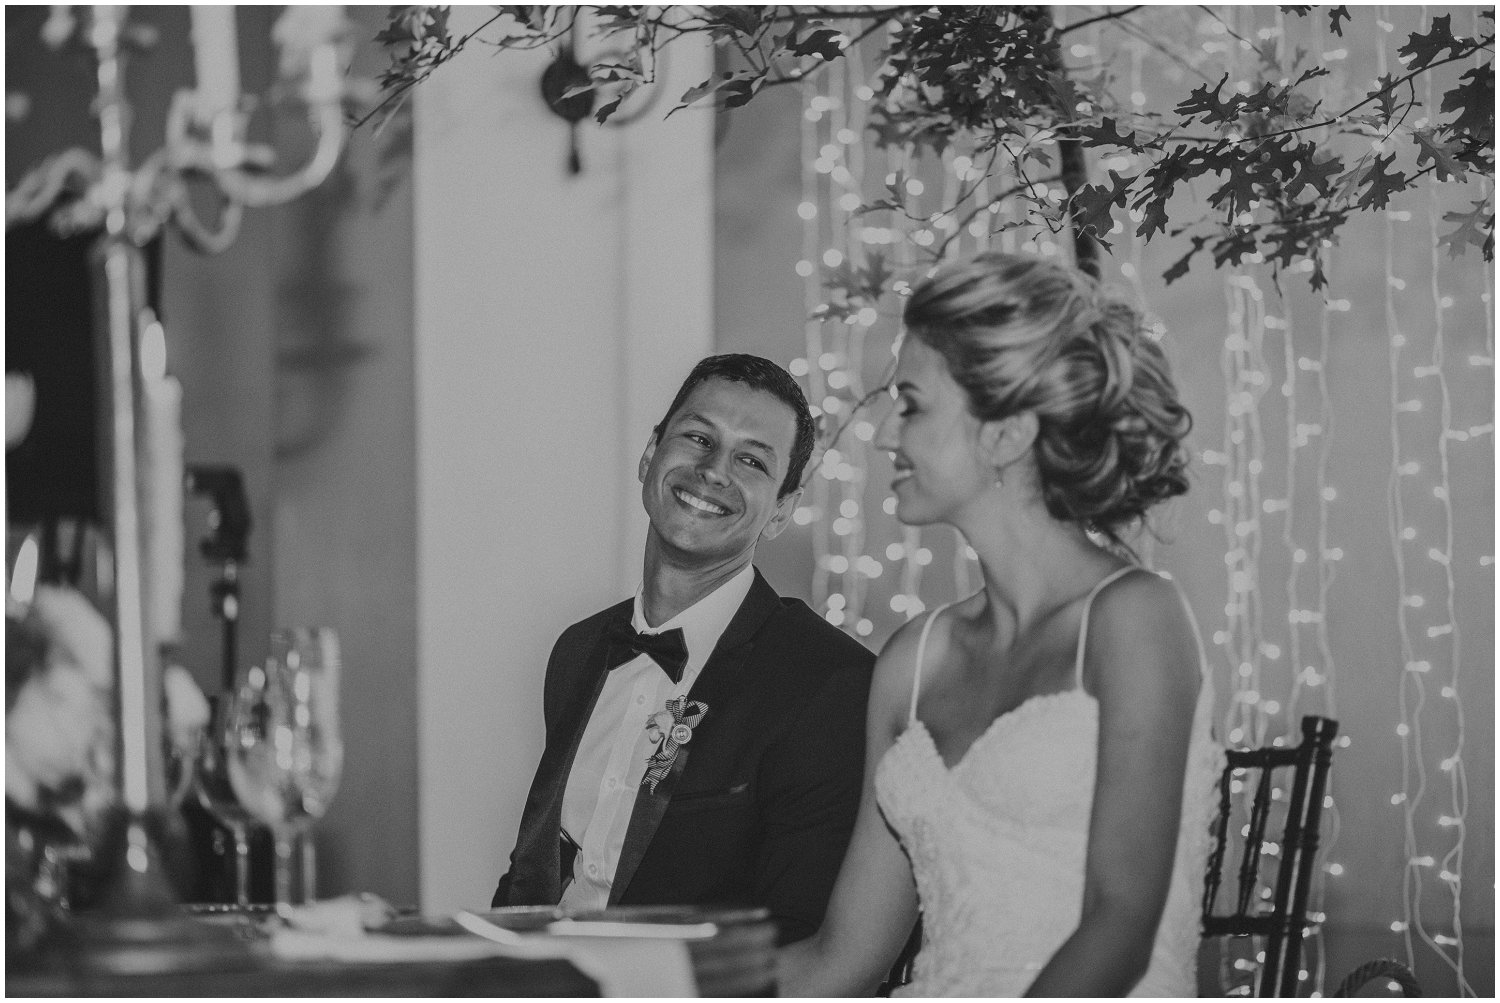 Top Artistic Creative Documentary Wedding Photographer Cape Town South Africa Rue Kruger_0172.jpg